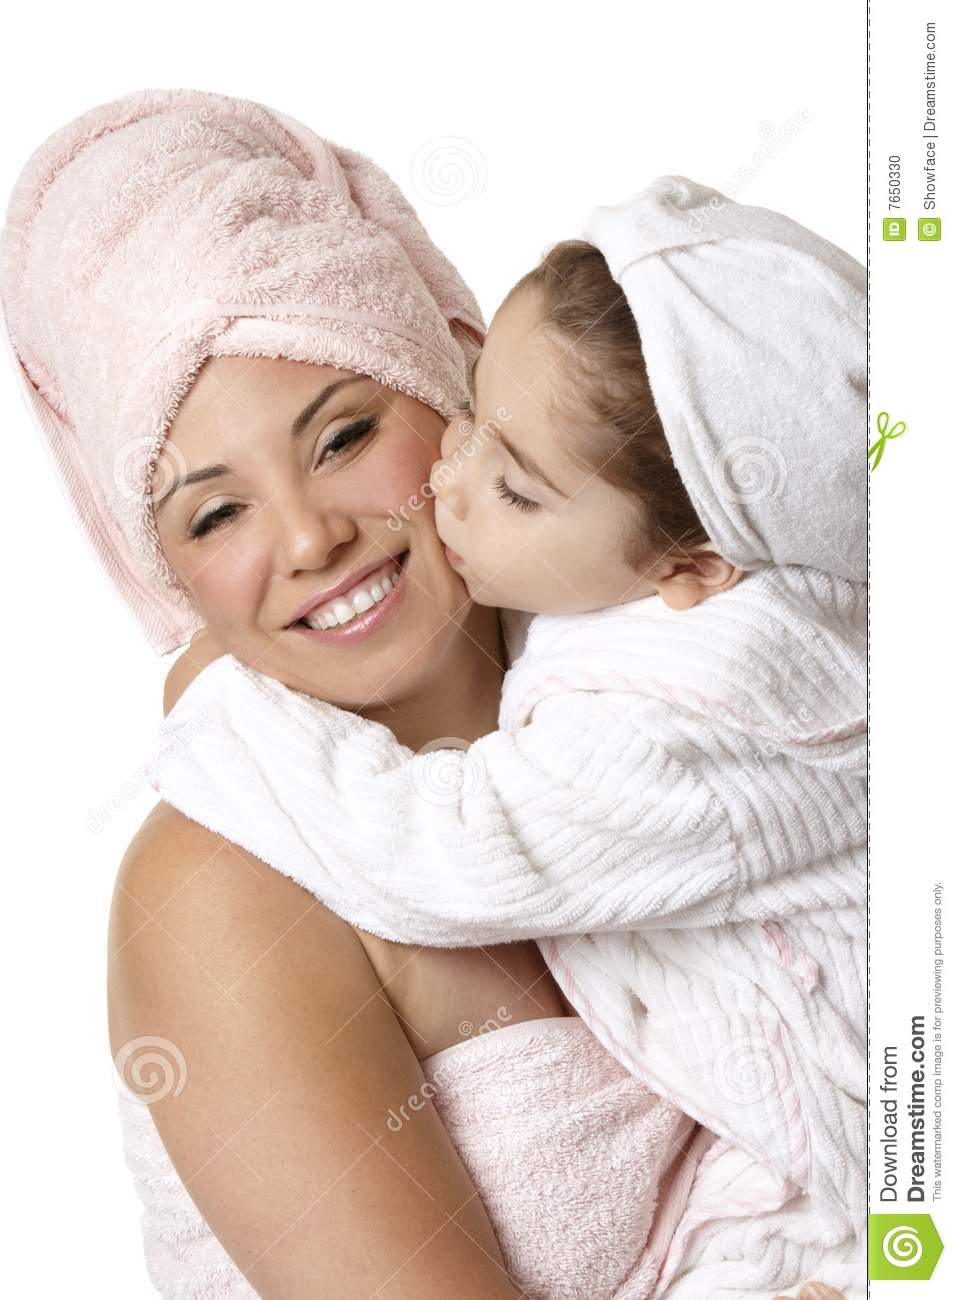 Mother Daughter At Bathtime Stock Photo - Image: 7650330 Relaxing Dog Bath